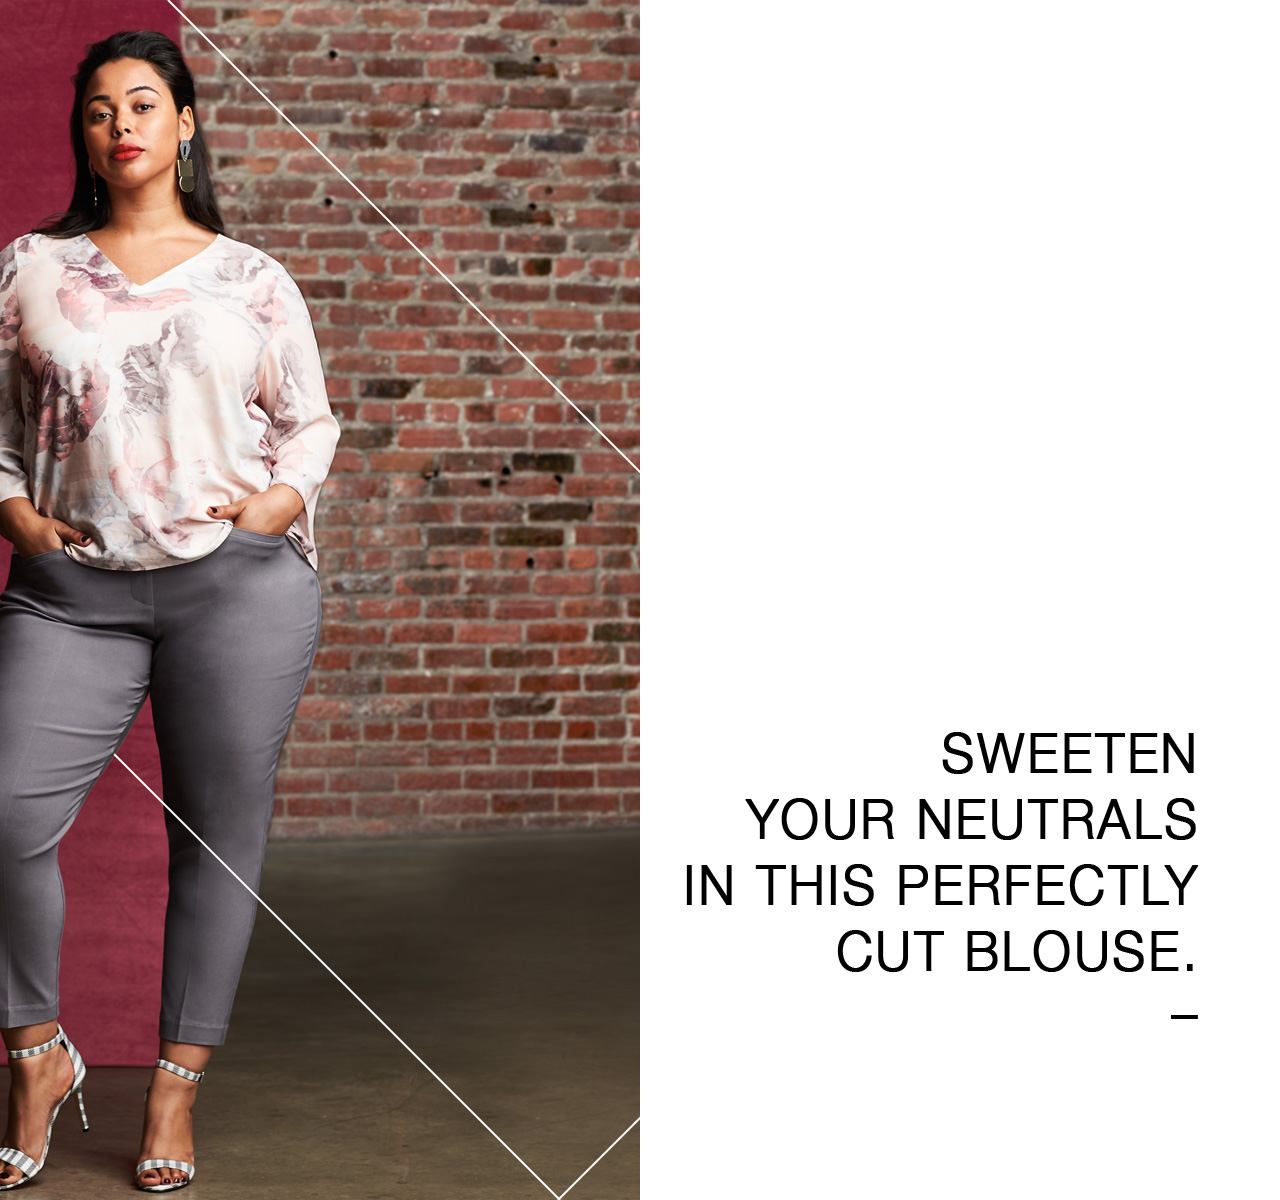 Sweeten your neutrals in this perfectly cut blouse.